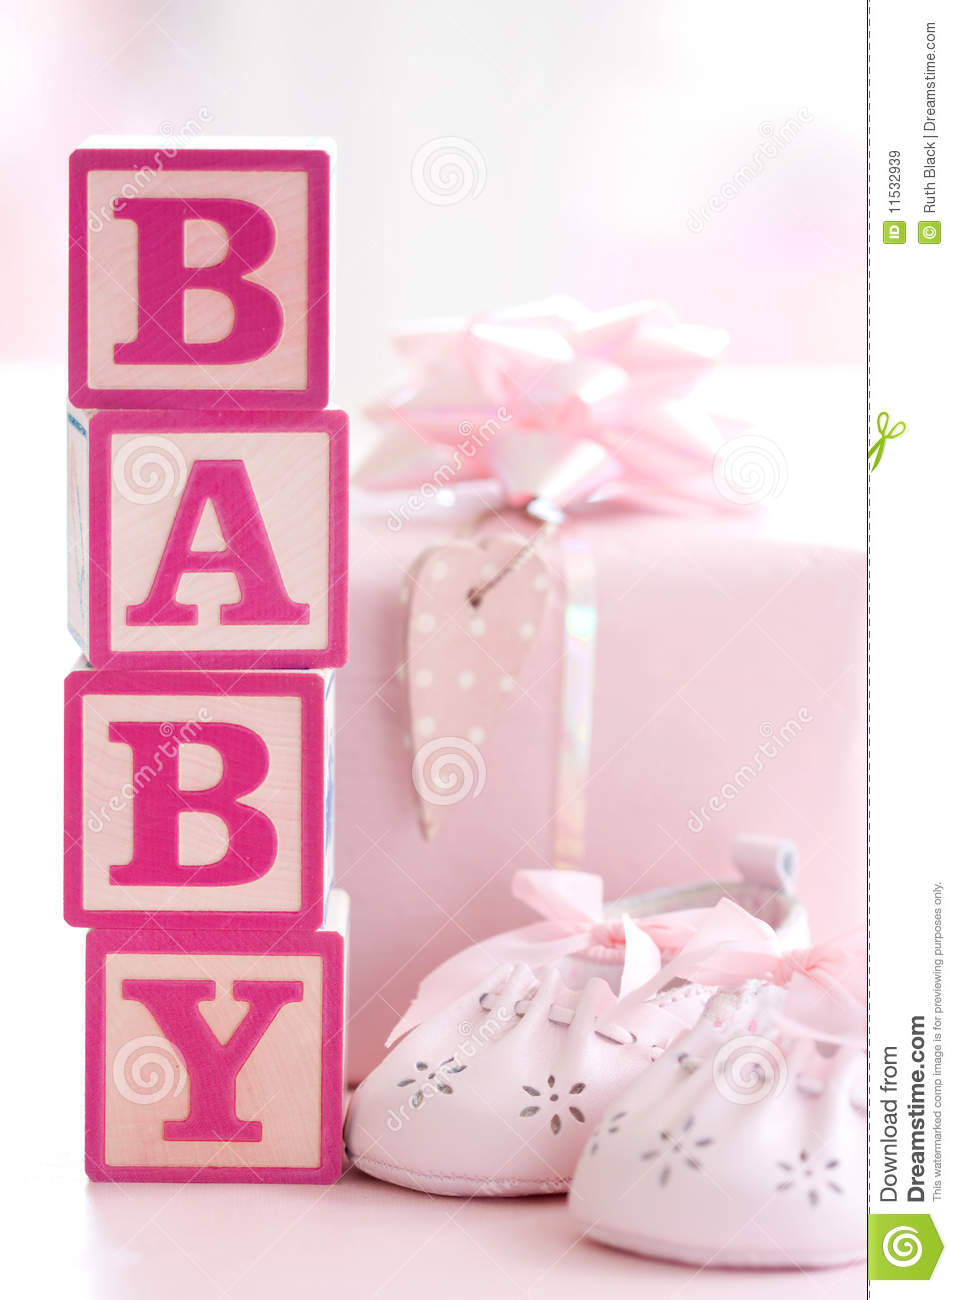 Concept Shot For Baby Shower Or New Baby Mr No Pr No 5 2334 39